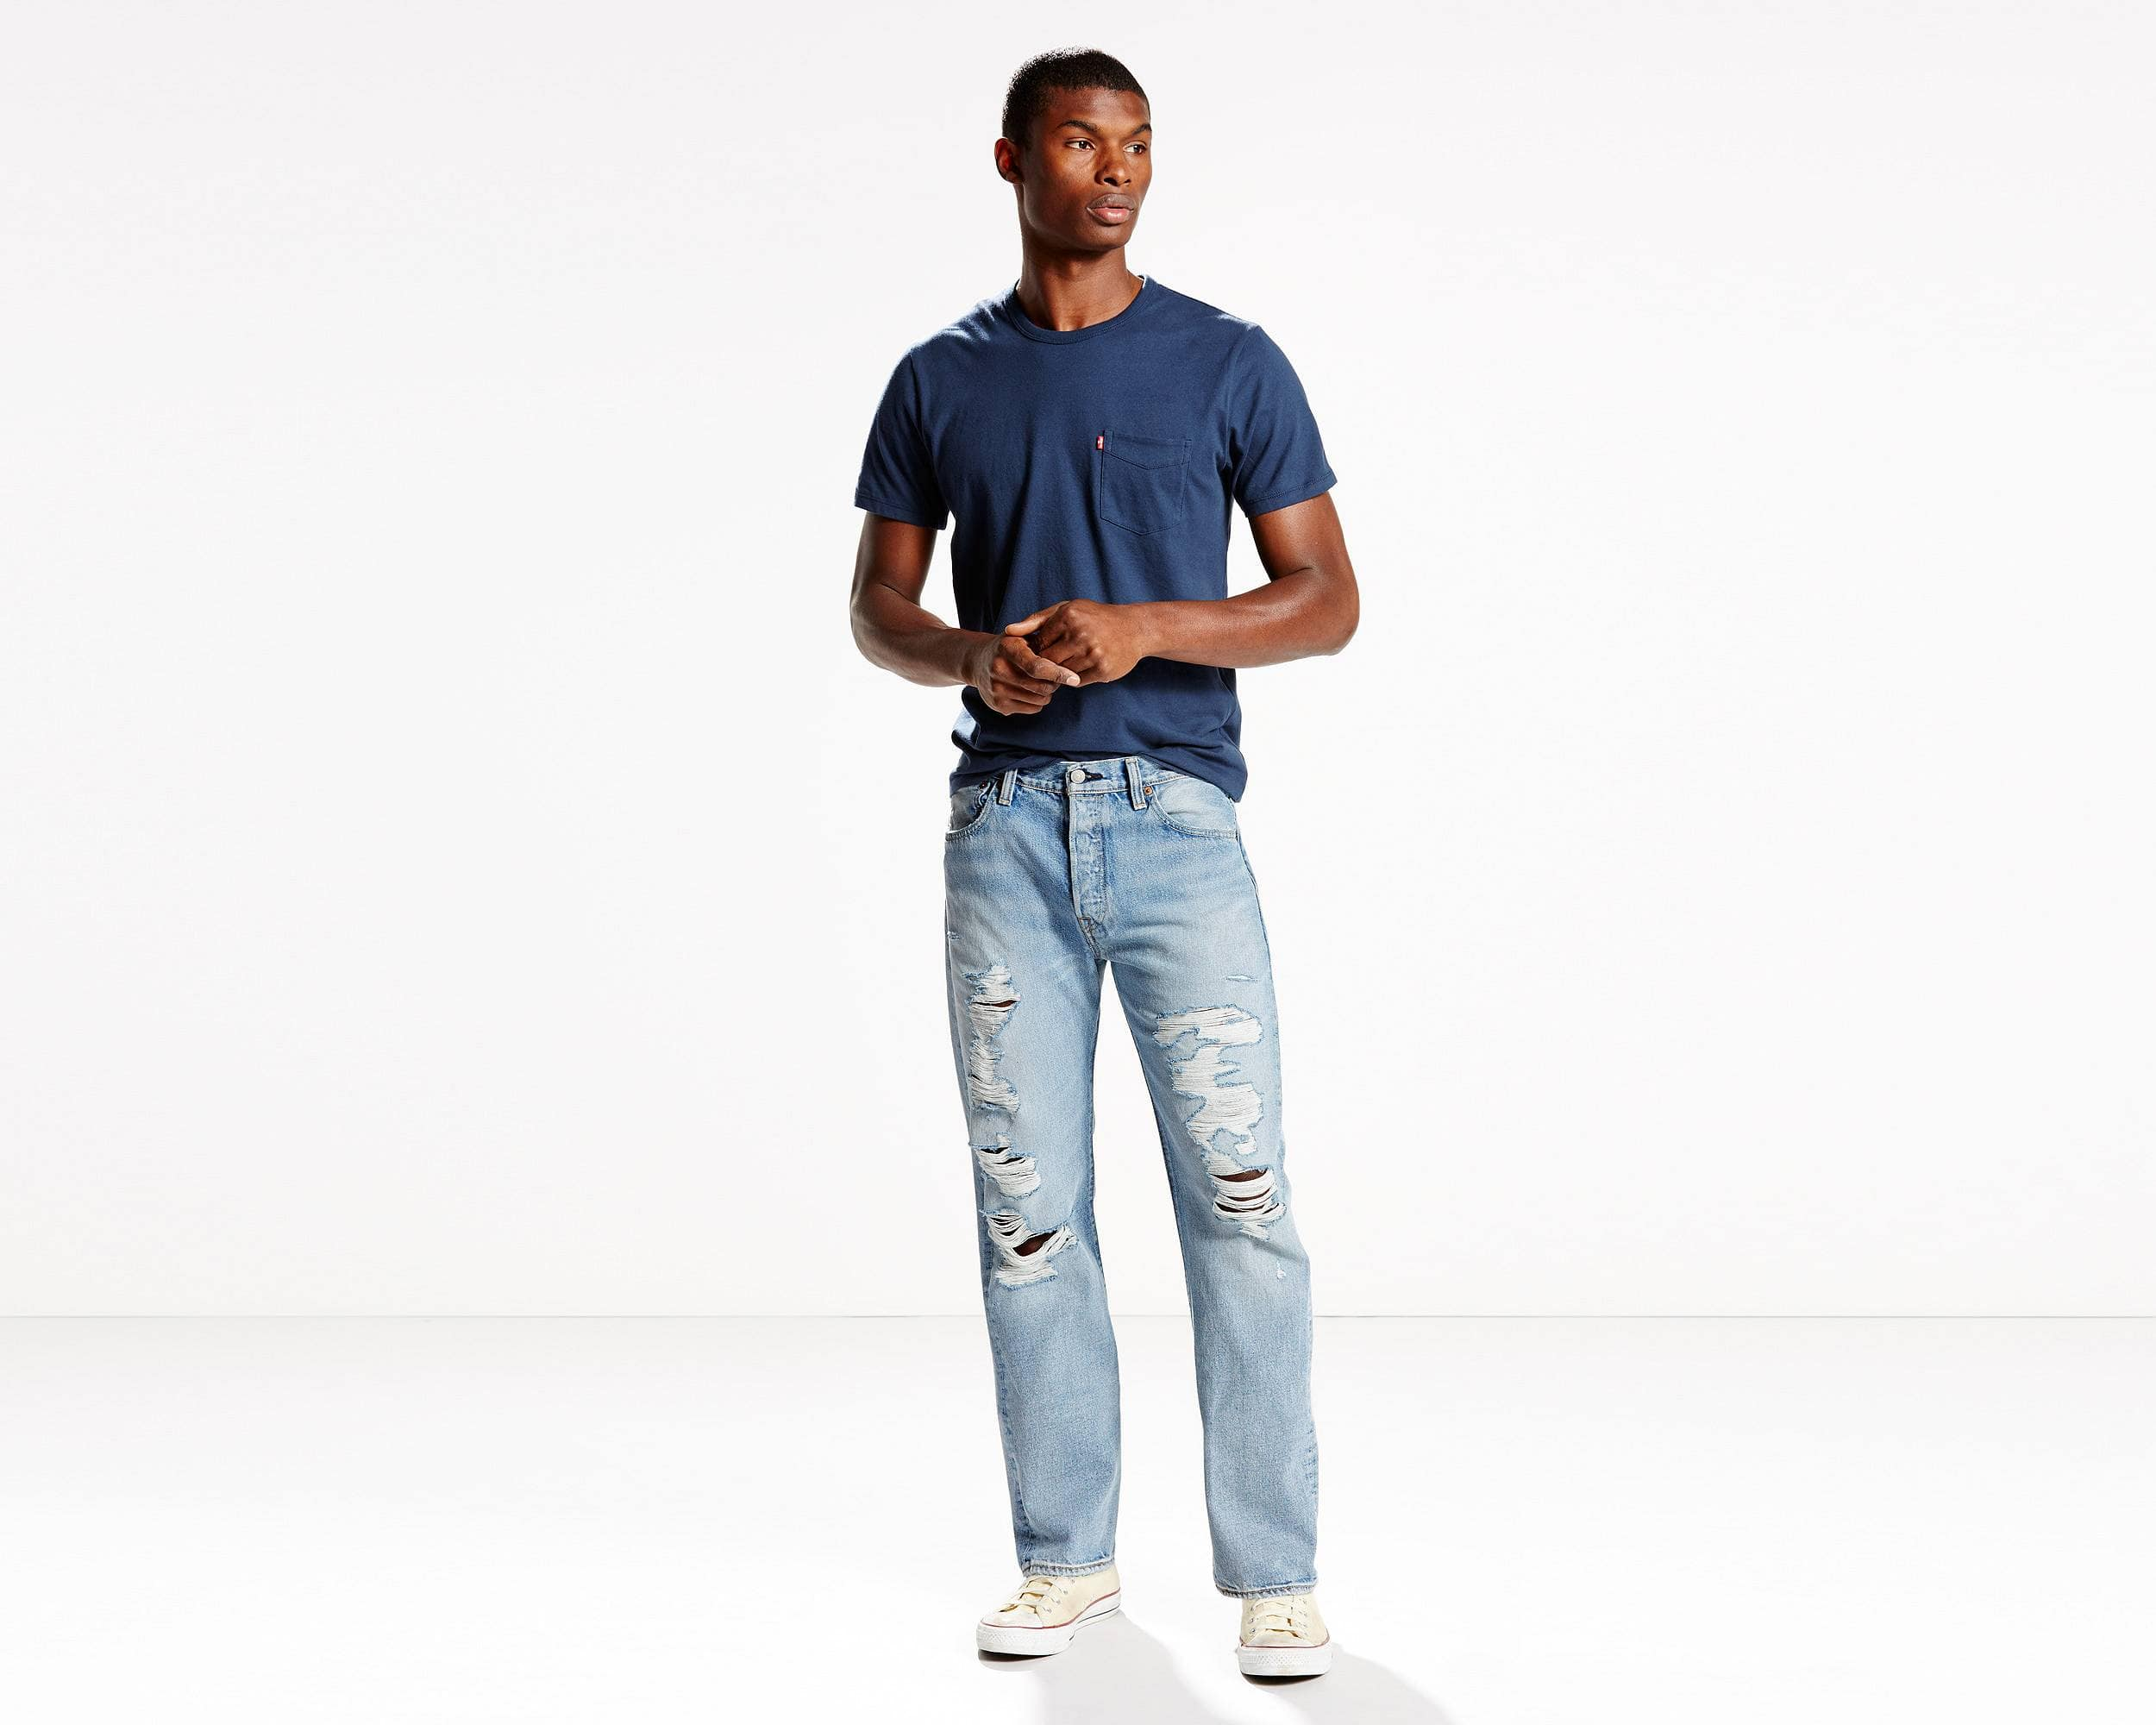 Levis Men's 501 Original Fit Jeans (david color only, size 29-34, inseams available vary) $16 + free shipping